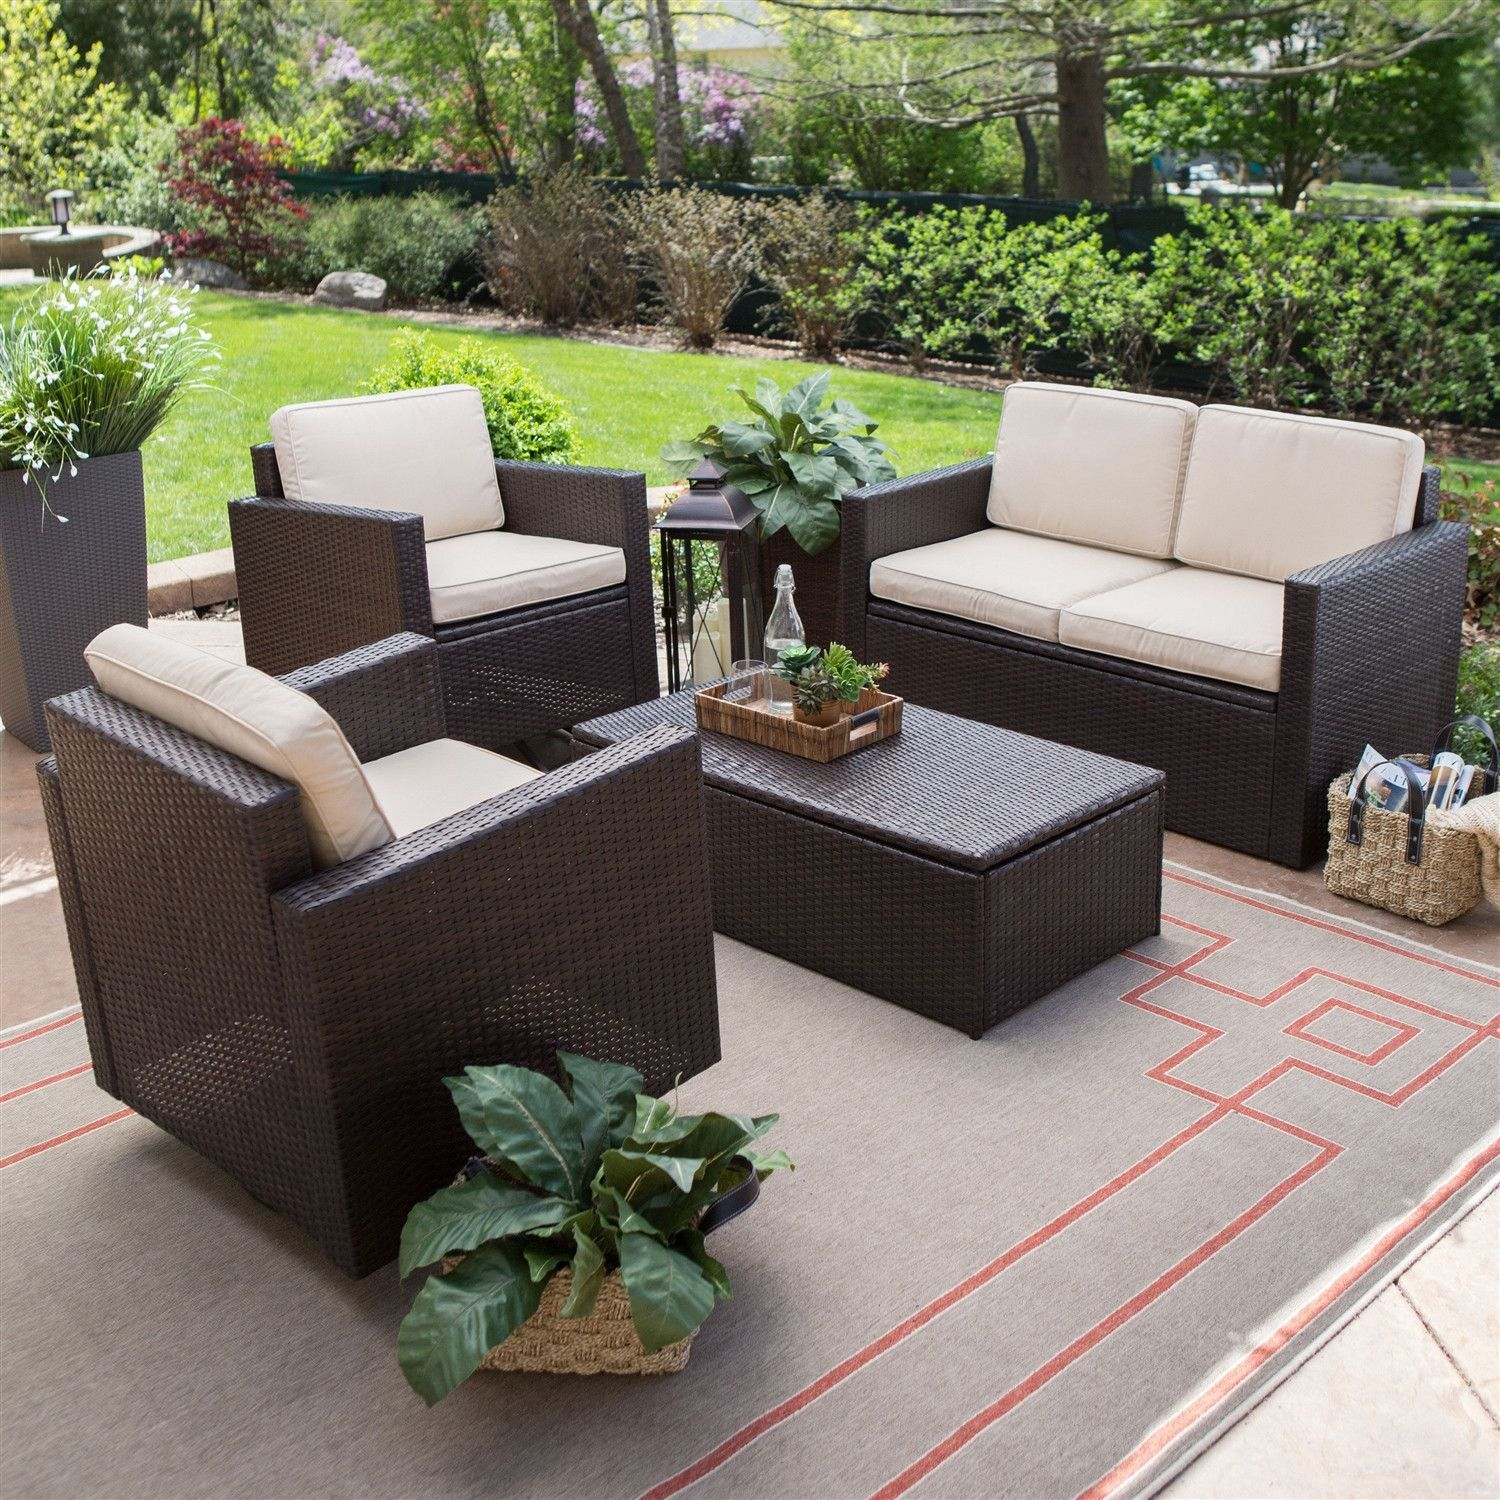 Ecklounge Rattan Outdoor Wicker Resin 4 Piece Patio Furniture Dinning Set With 2